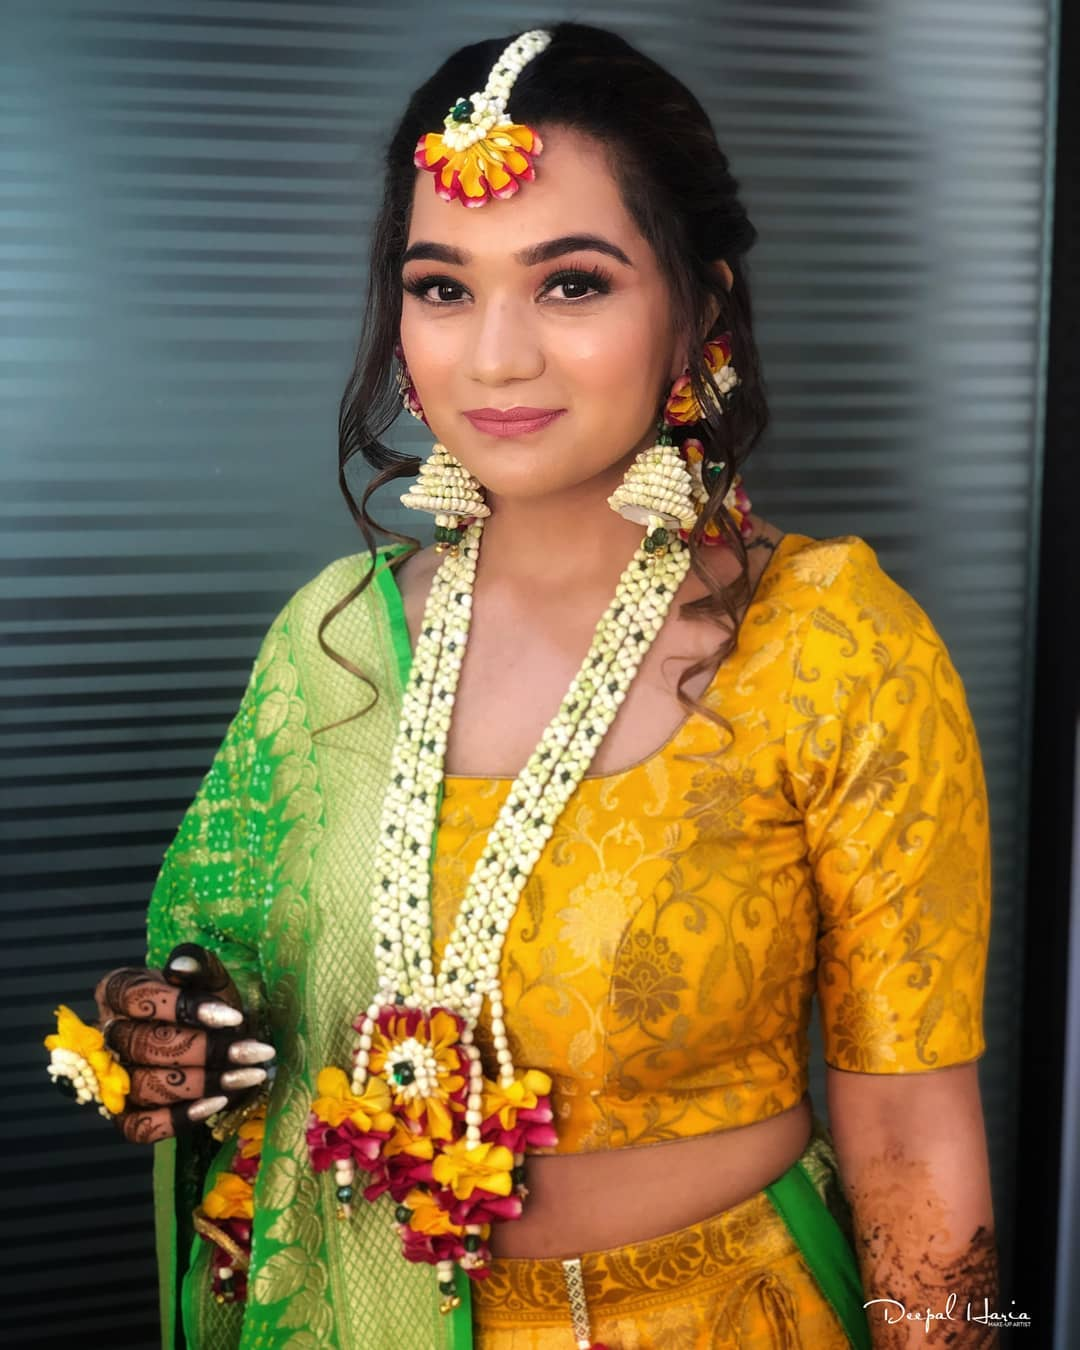 Fiery Yellow floral jewellery:  Haldi Ceremony Floral Jewellery for Your Wedding